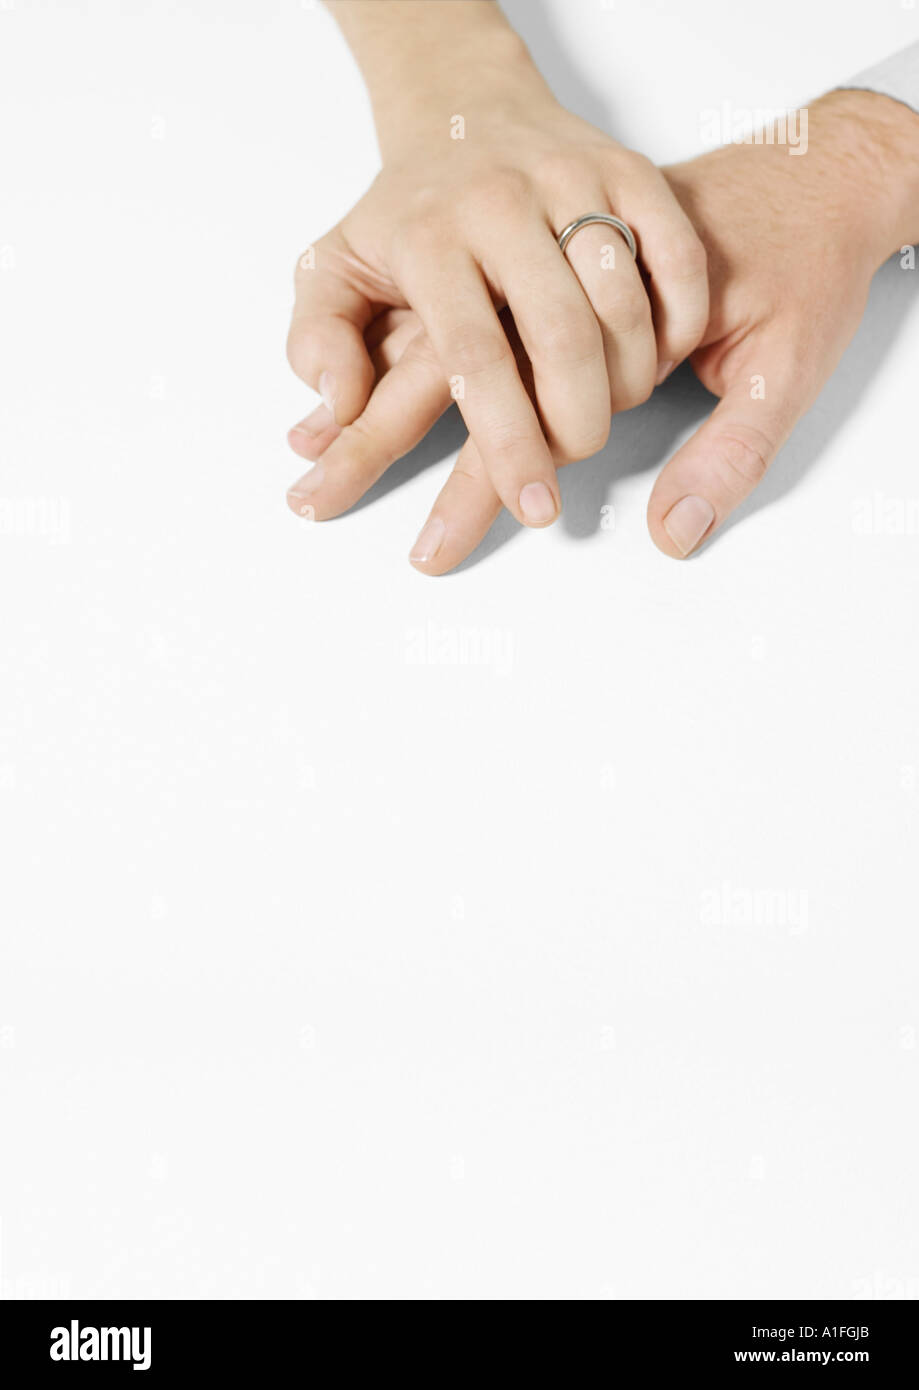 Woman wearing wedding ring clasping man's hand - Stock Image